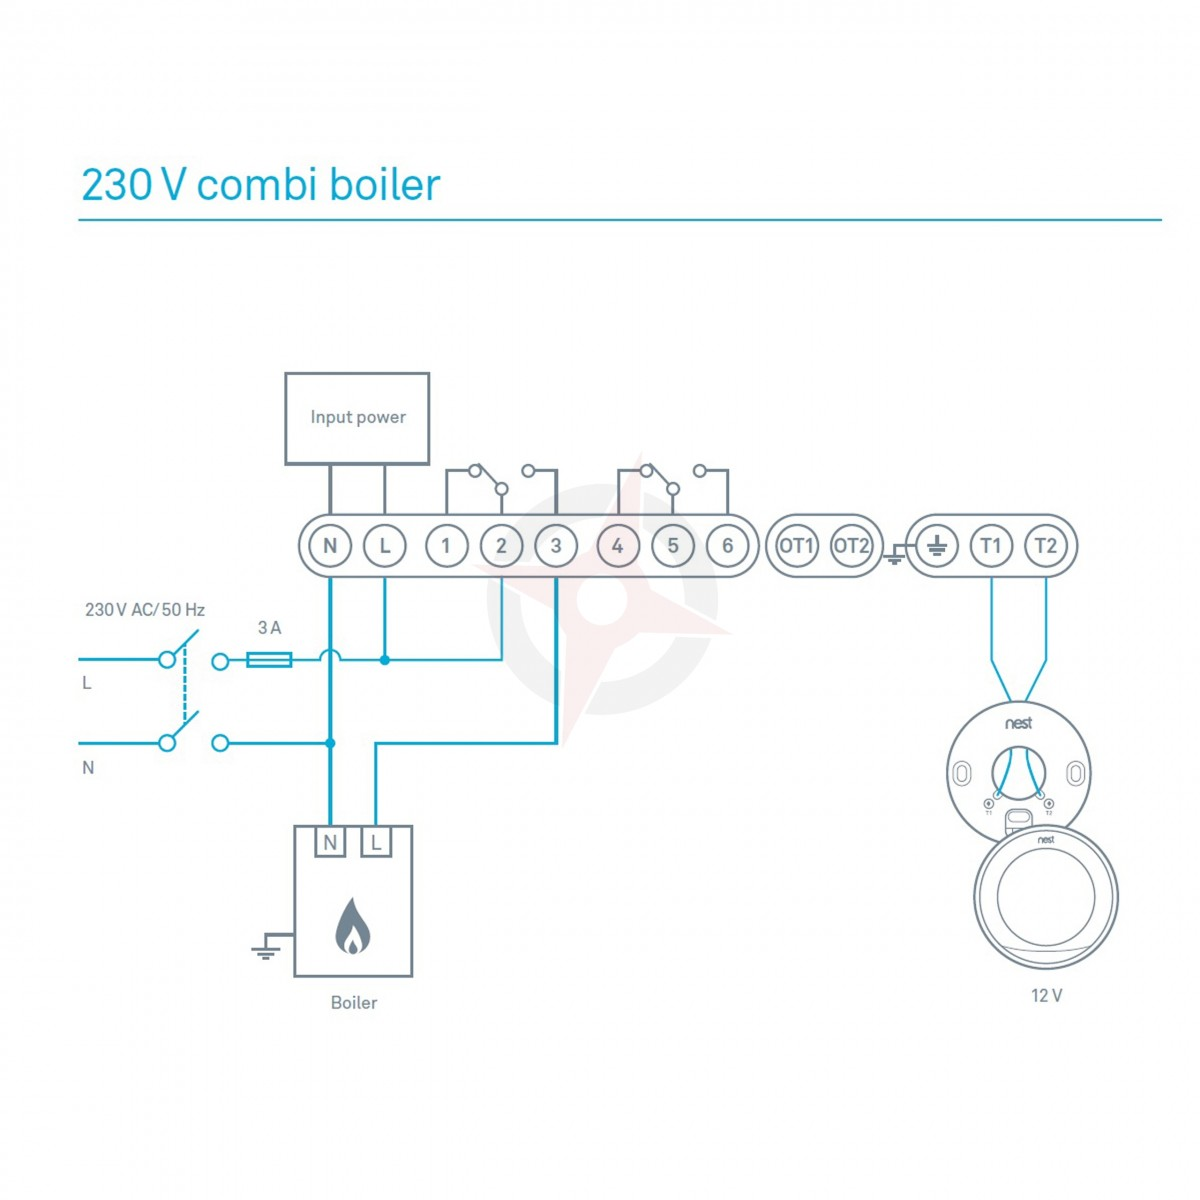 Wiring Diagram For Nest Thermostat 3Rd Generation from www.compass-plumbing.co.uk